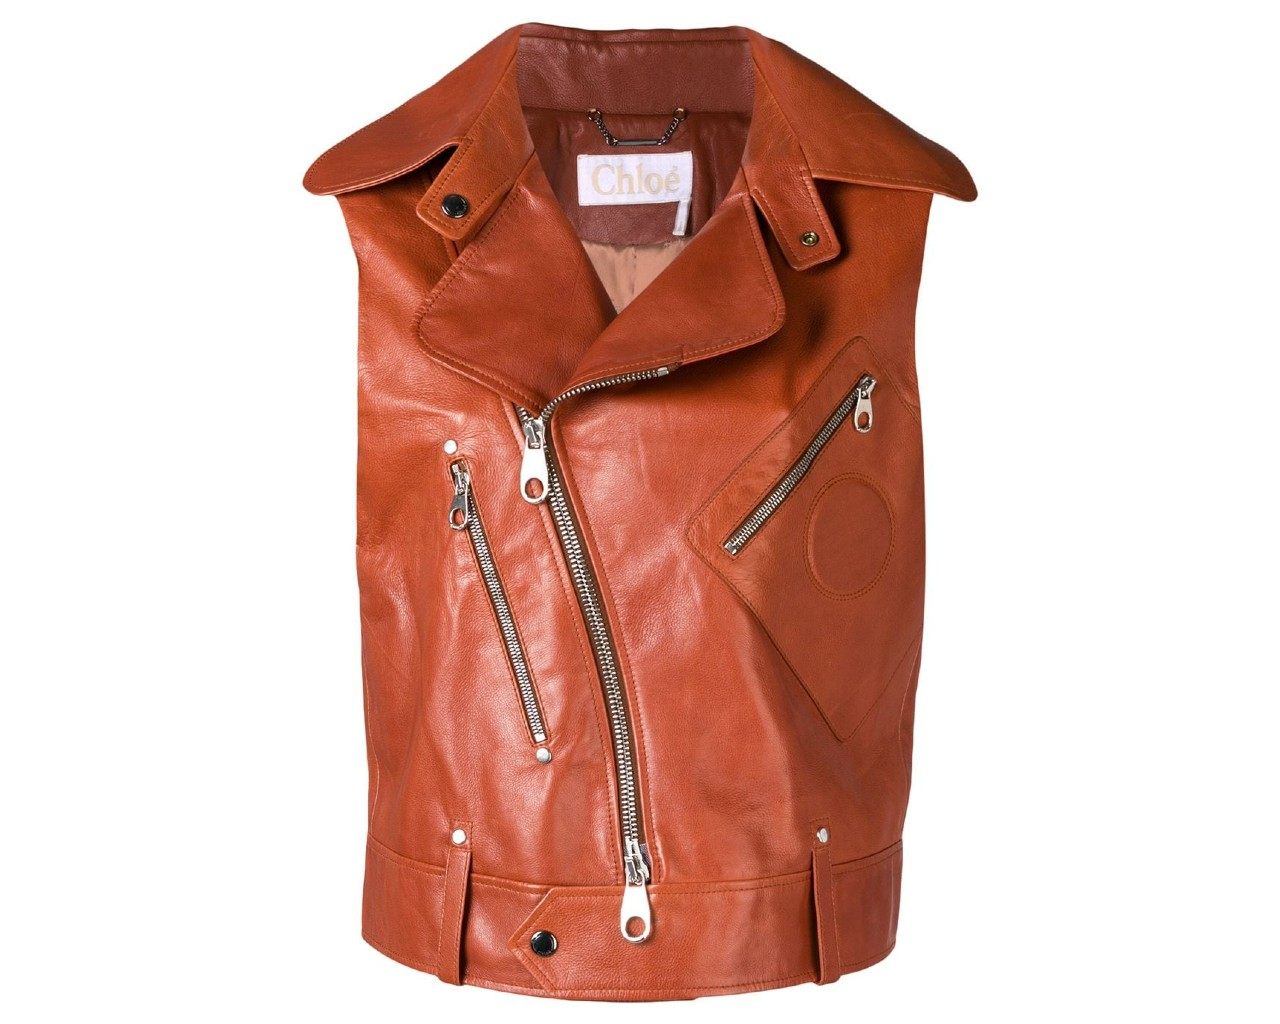 Chloe Asymmetrical Vest, inspired by Bella Hadid's brown leather vest